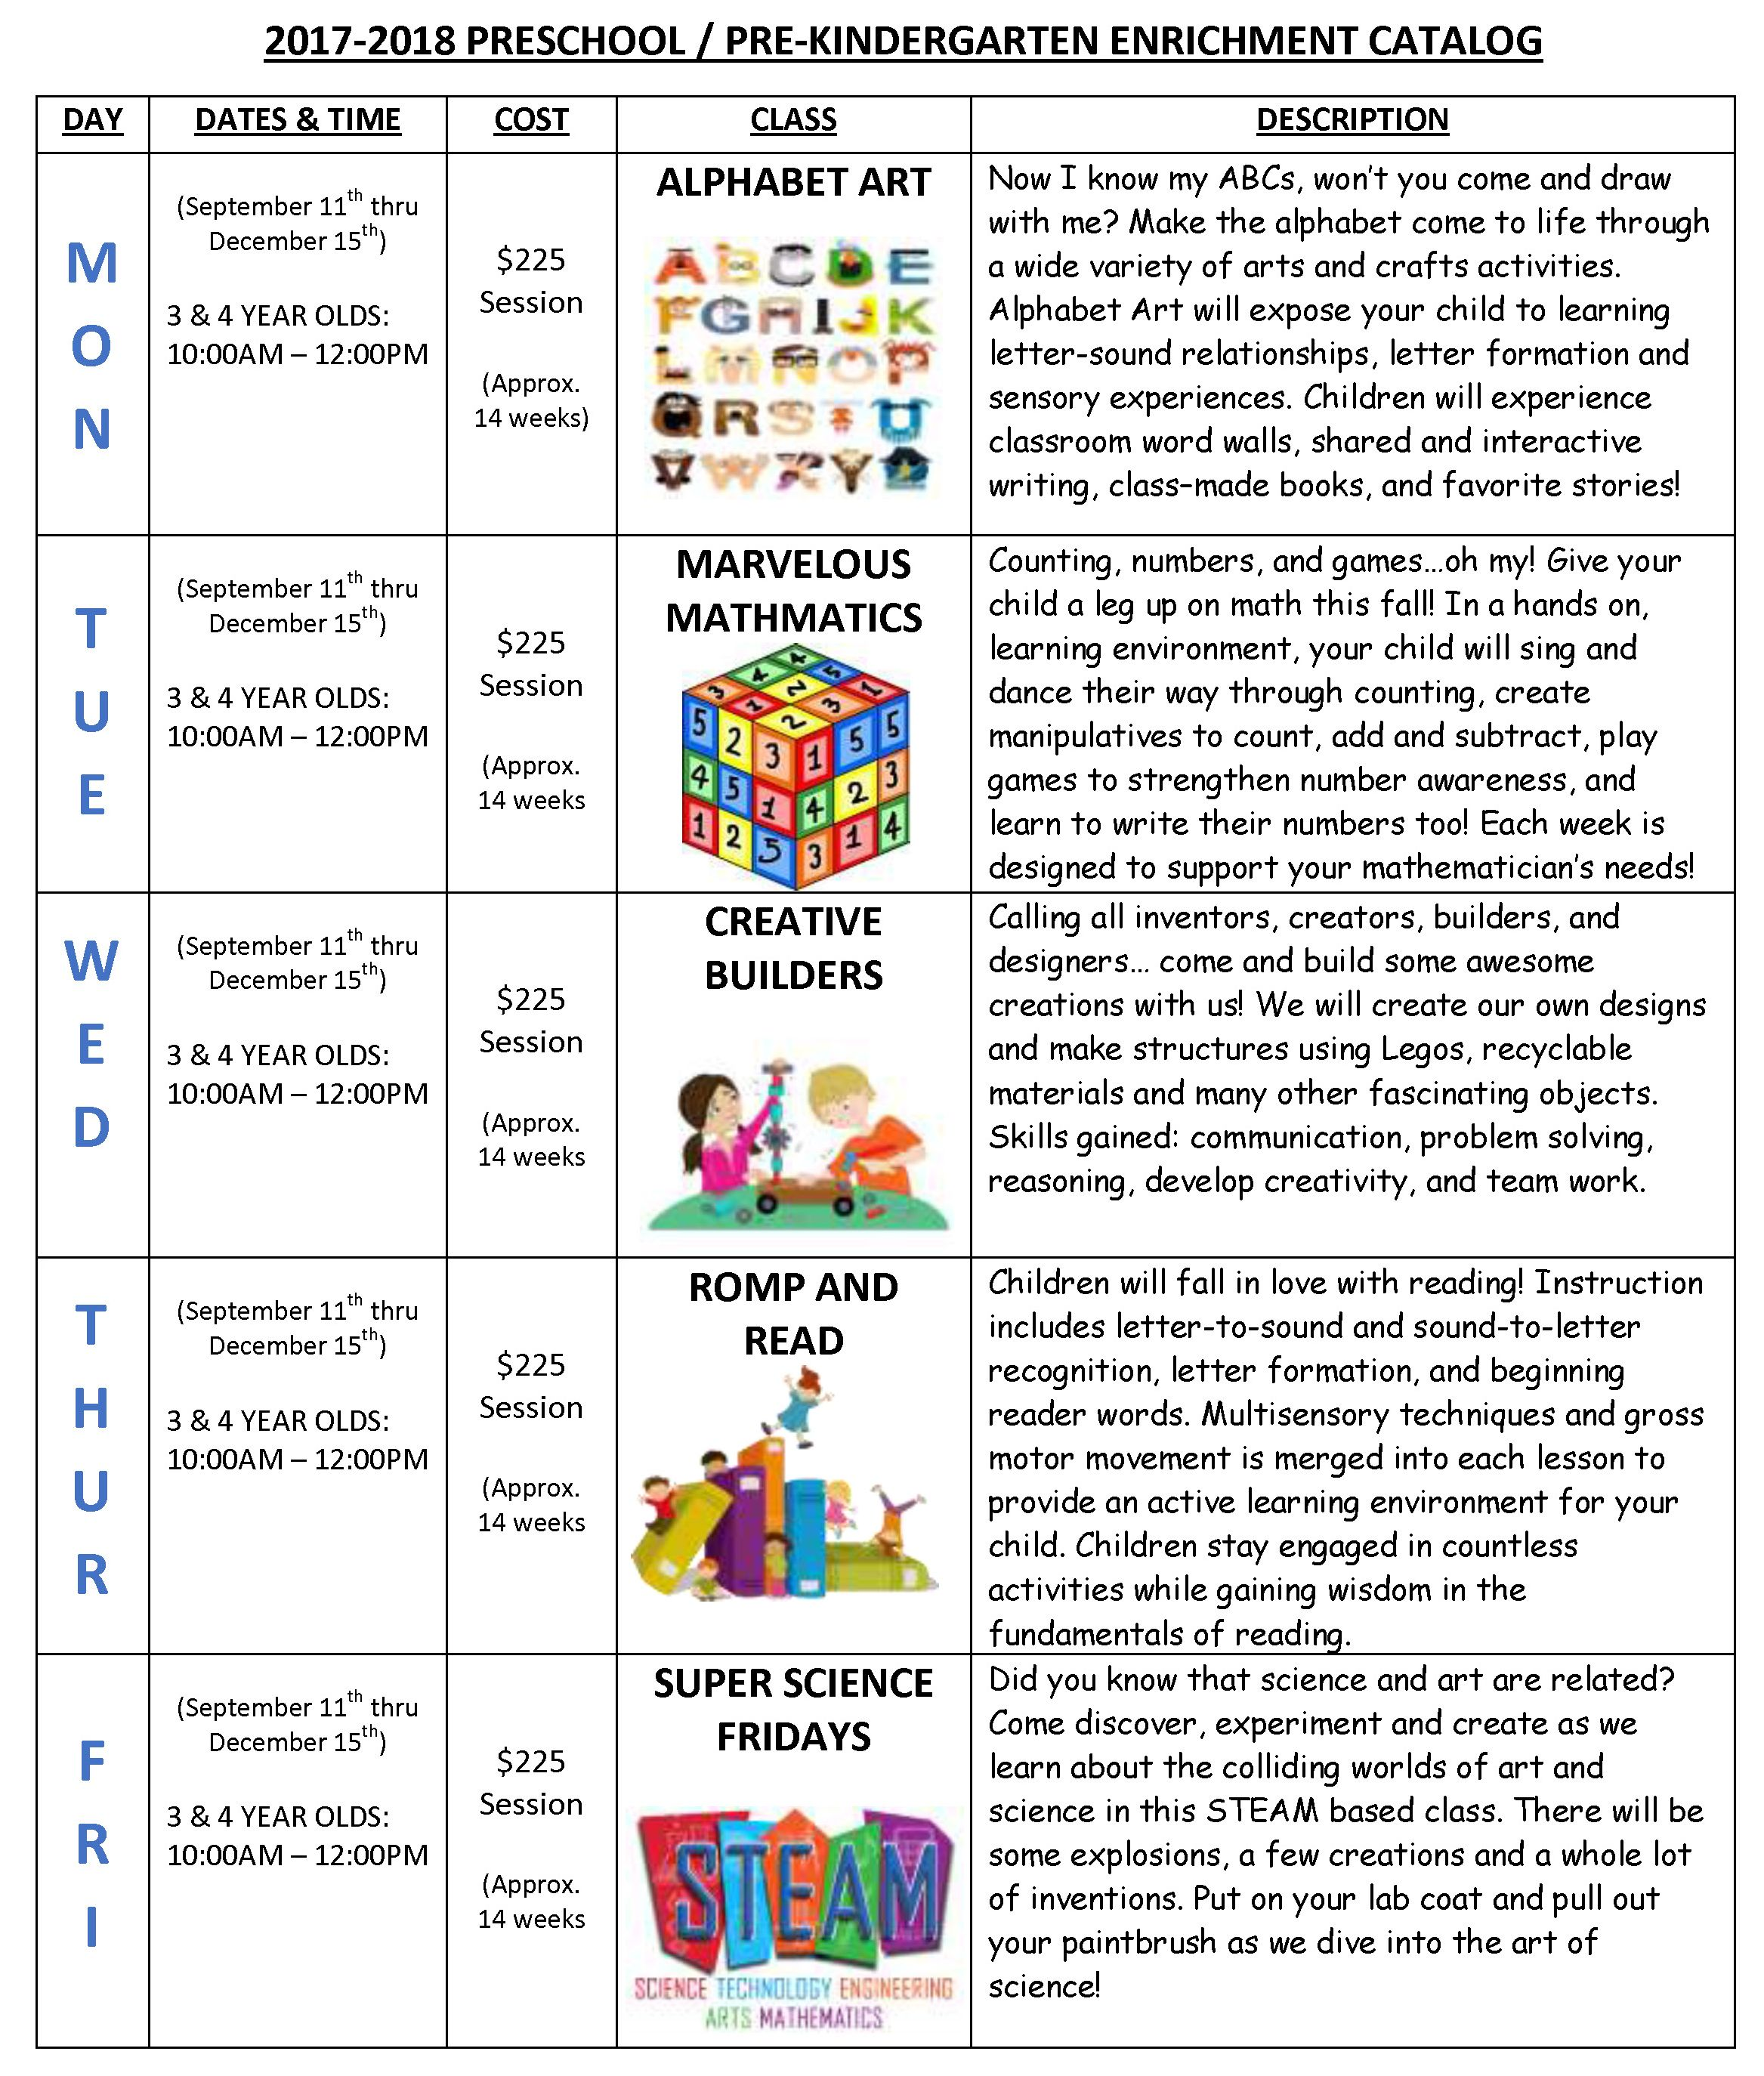 Worksheet Kindergarten Enrichment Activities pre kindergarten enrichment kids creative learning centers we have several programs that children from ages 3 to 5 will engage in age appropriate activities focus o